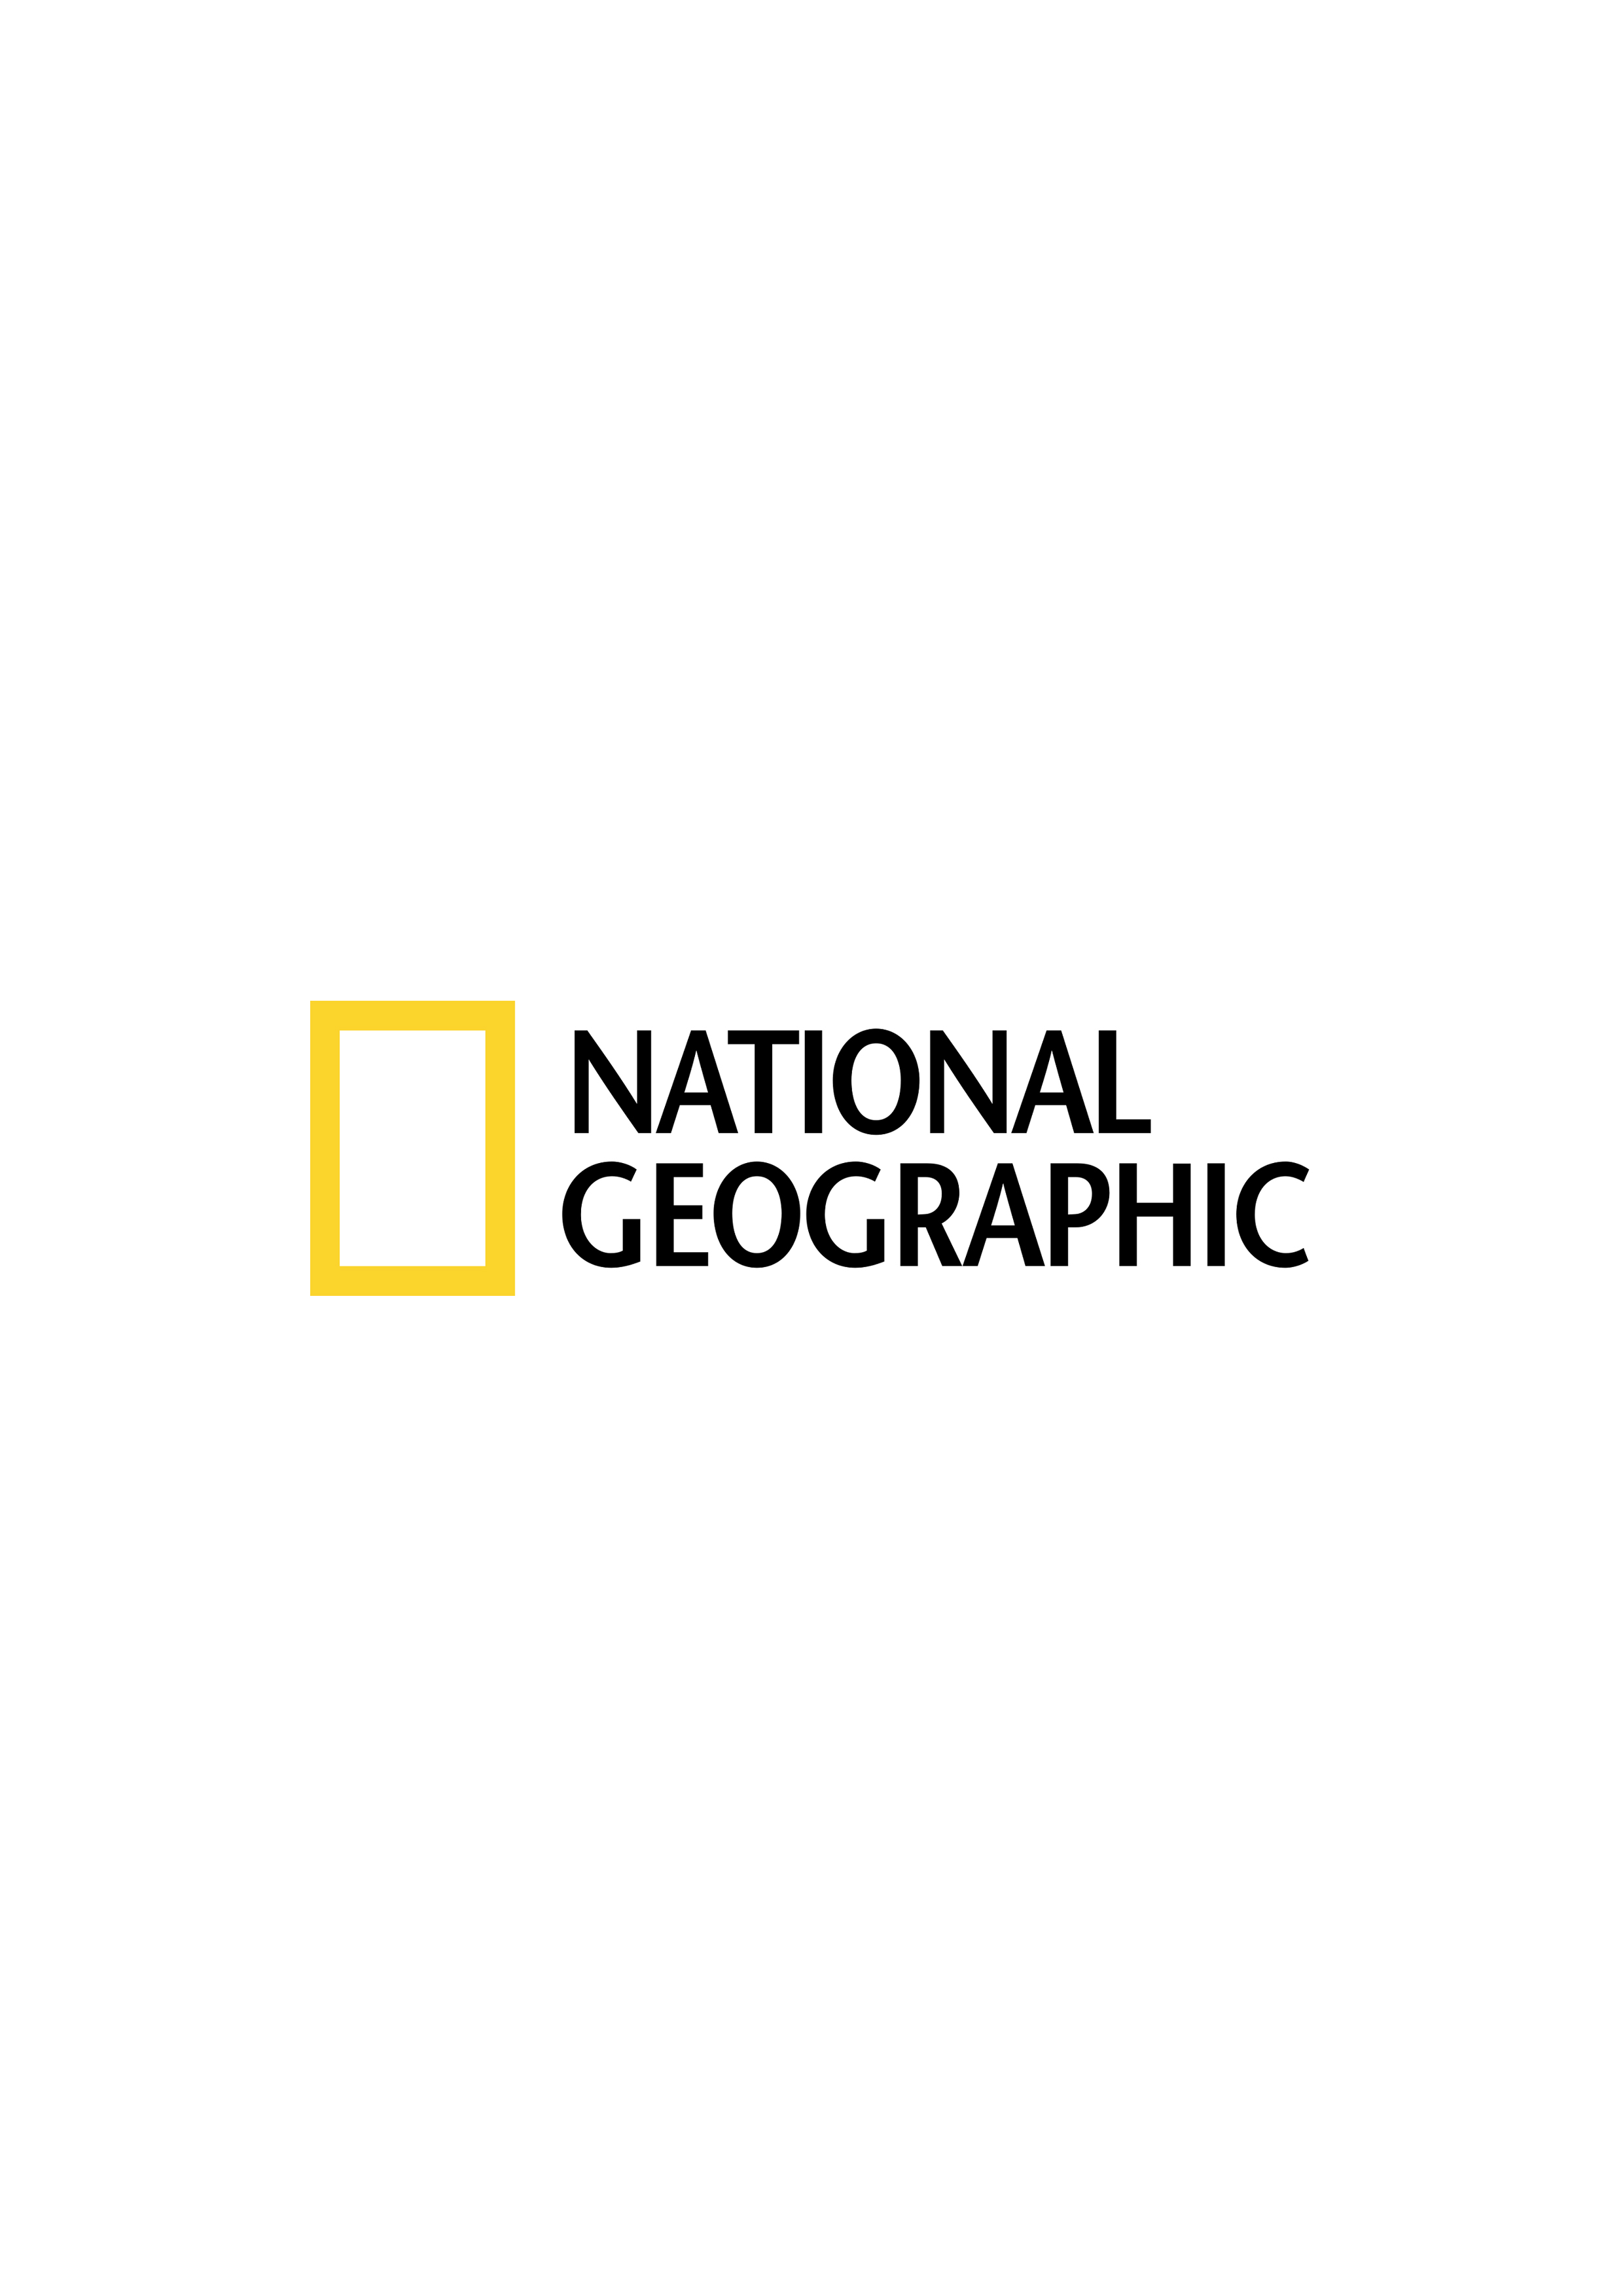 National Geographic >>